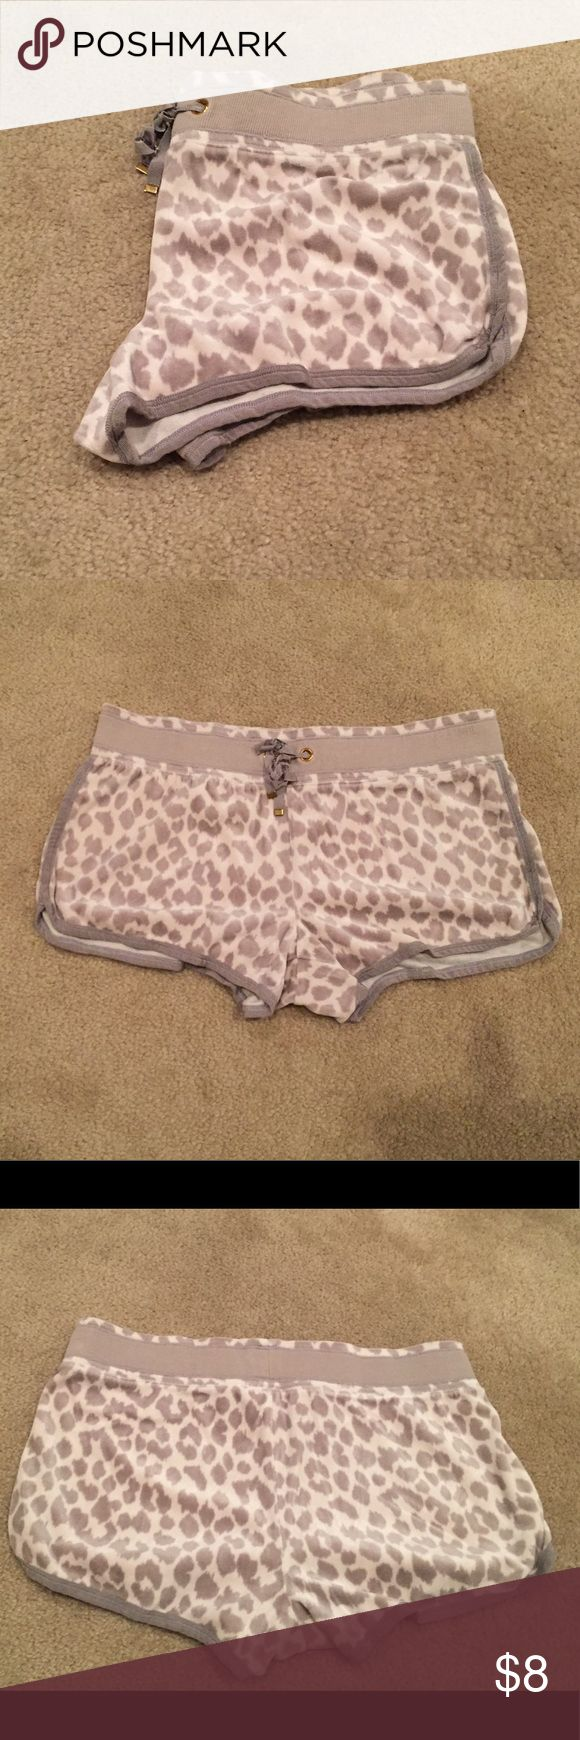 ❄️🐆 snow leopard velour shorts VS snow leopard pj shorts Victoria's Secret Intimates & Sleepwear Pajamas